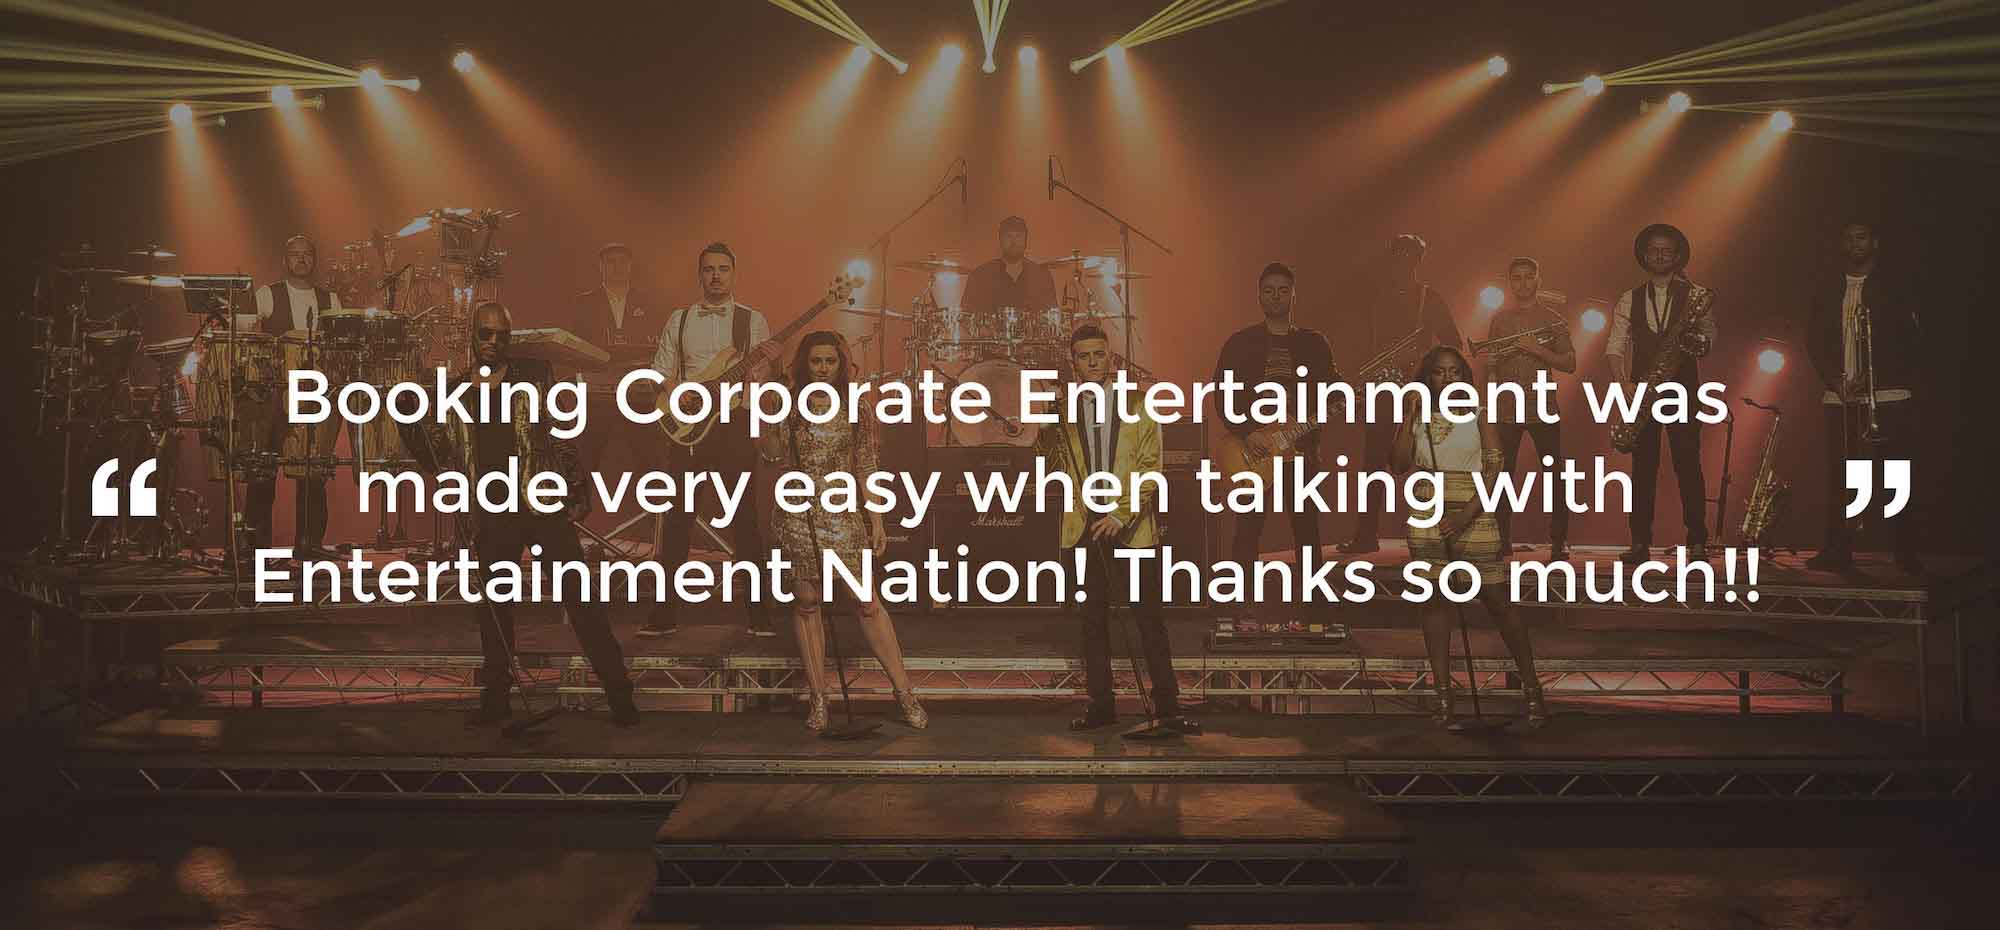 Client Review of Corporate Entertainment Carmarthenshire